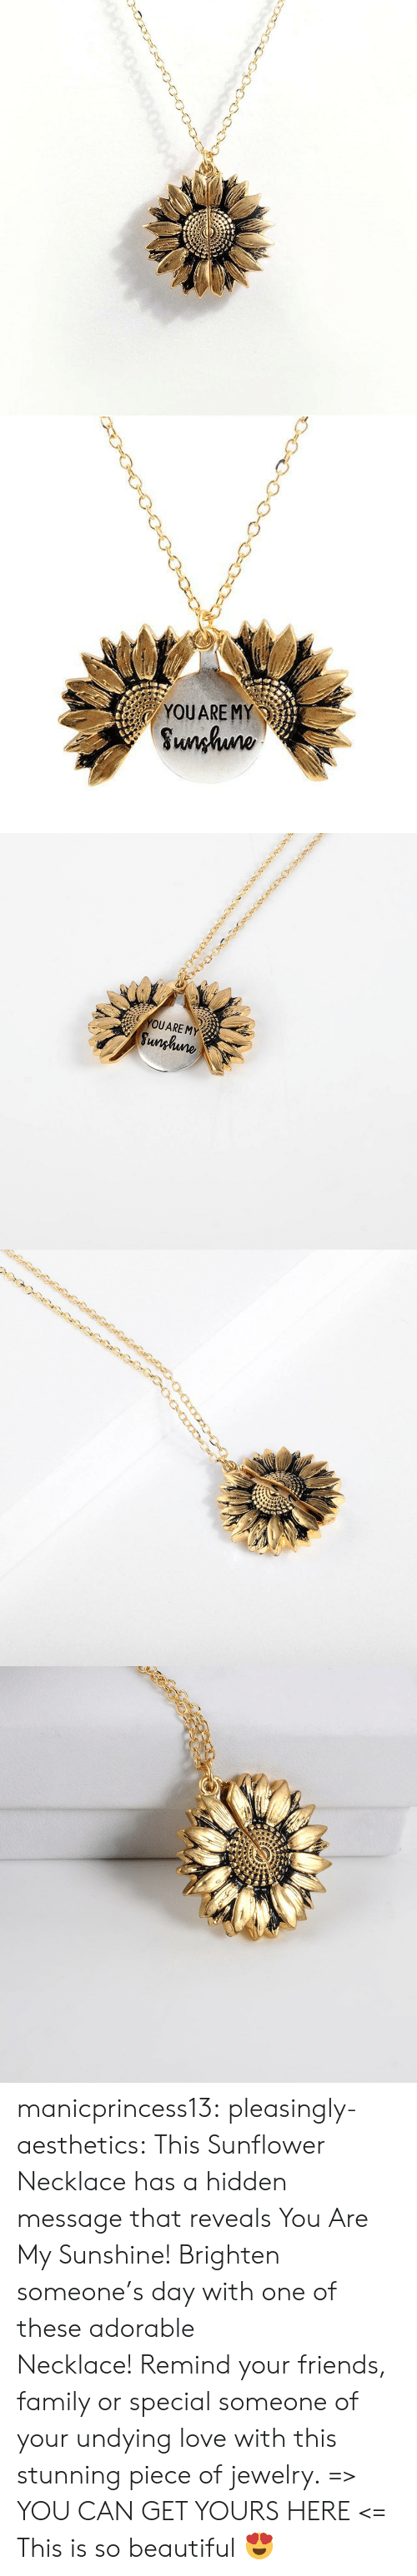 Beautiful, Family, and Friends: YOUARE MY  Sunhuno   YOUARE MY  Sunghune manicprincess13:  pleasingly-aesthetics: This Sunflower Necklace has a hidden message that reveals You Are My Sunshine! Brighten someone's day with one of these adorable Necklace!Remind your friends, family or special someone of your undying love with this stunning piece of jewelry. => YOU CAN GET YOURS HERE <=   This is so beautiful 😍